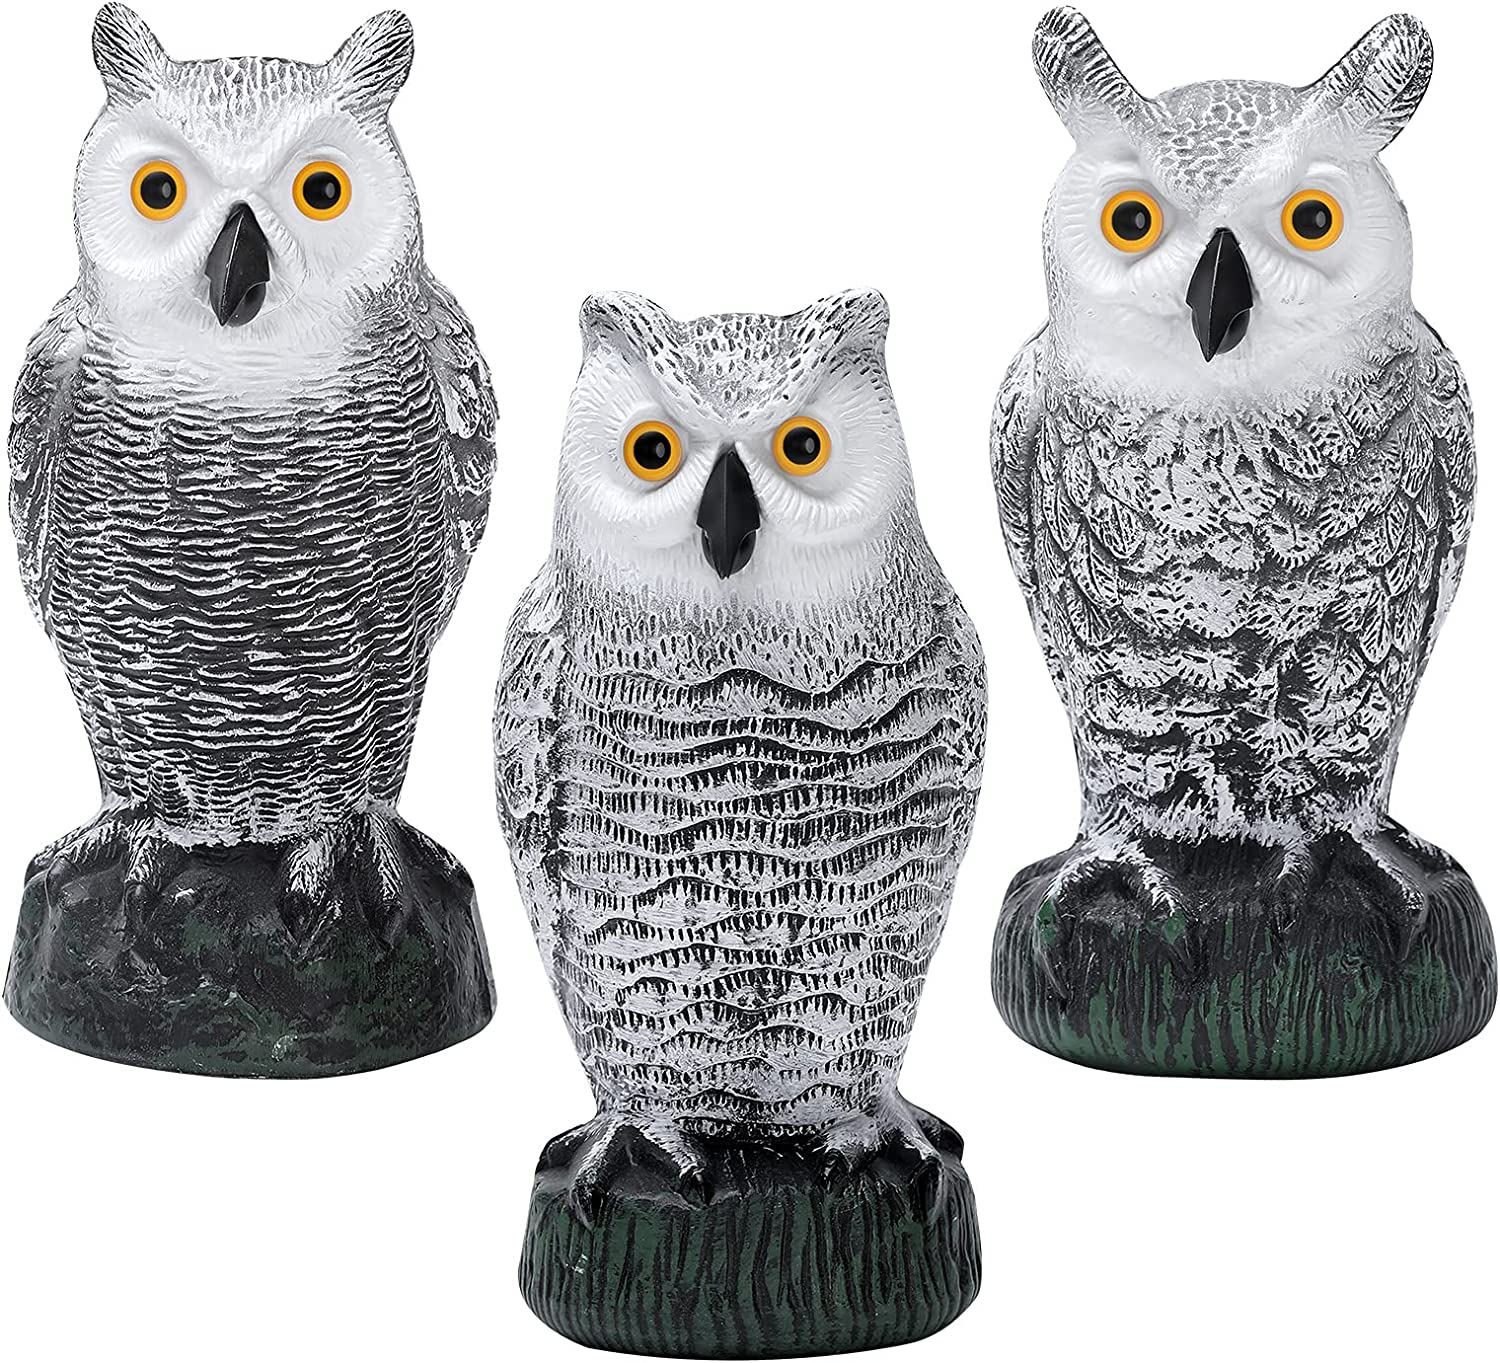 KKY 3 Packs Plastic Owl Bird Scarecrow Sculpture, Can Drive Away Birds and Animals Away from The House, Garden, Swimming Pool